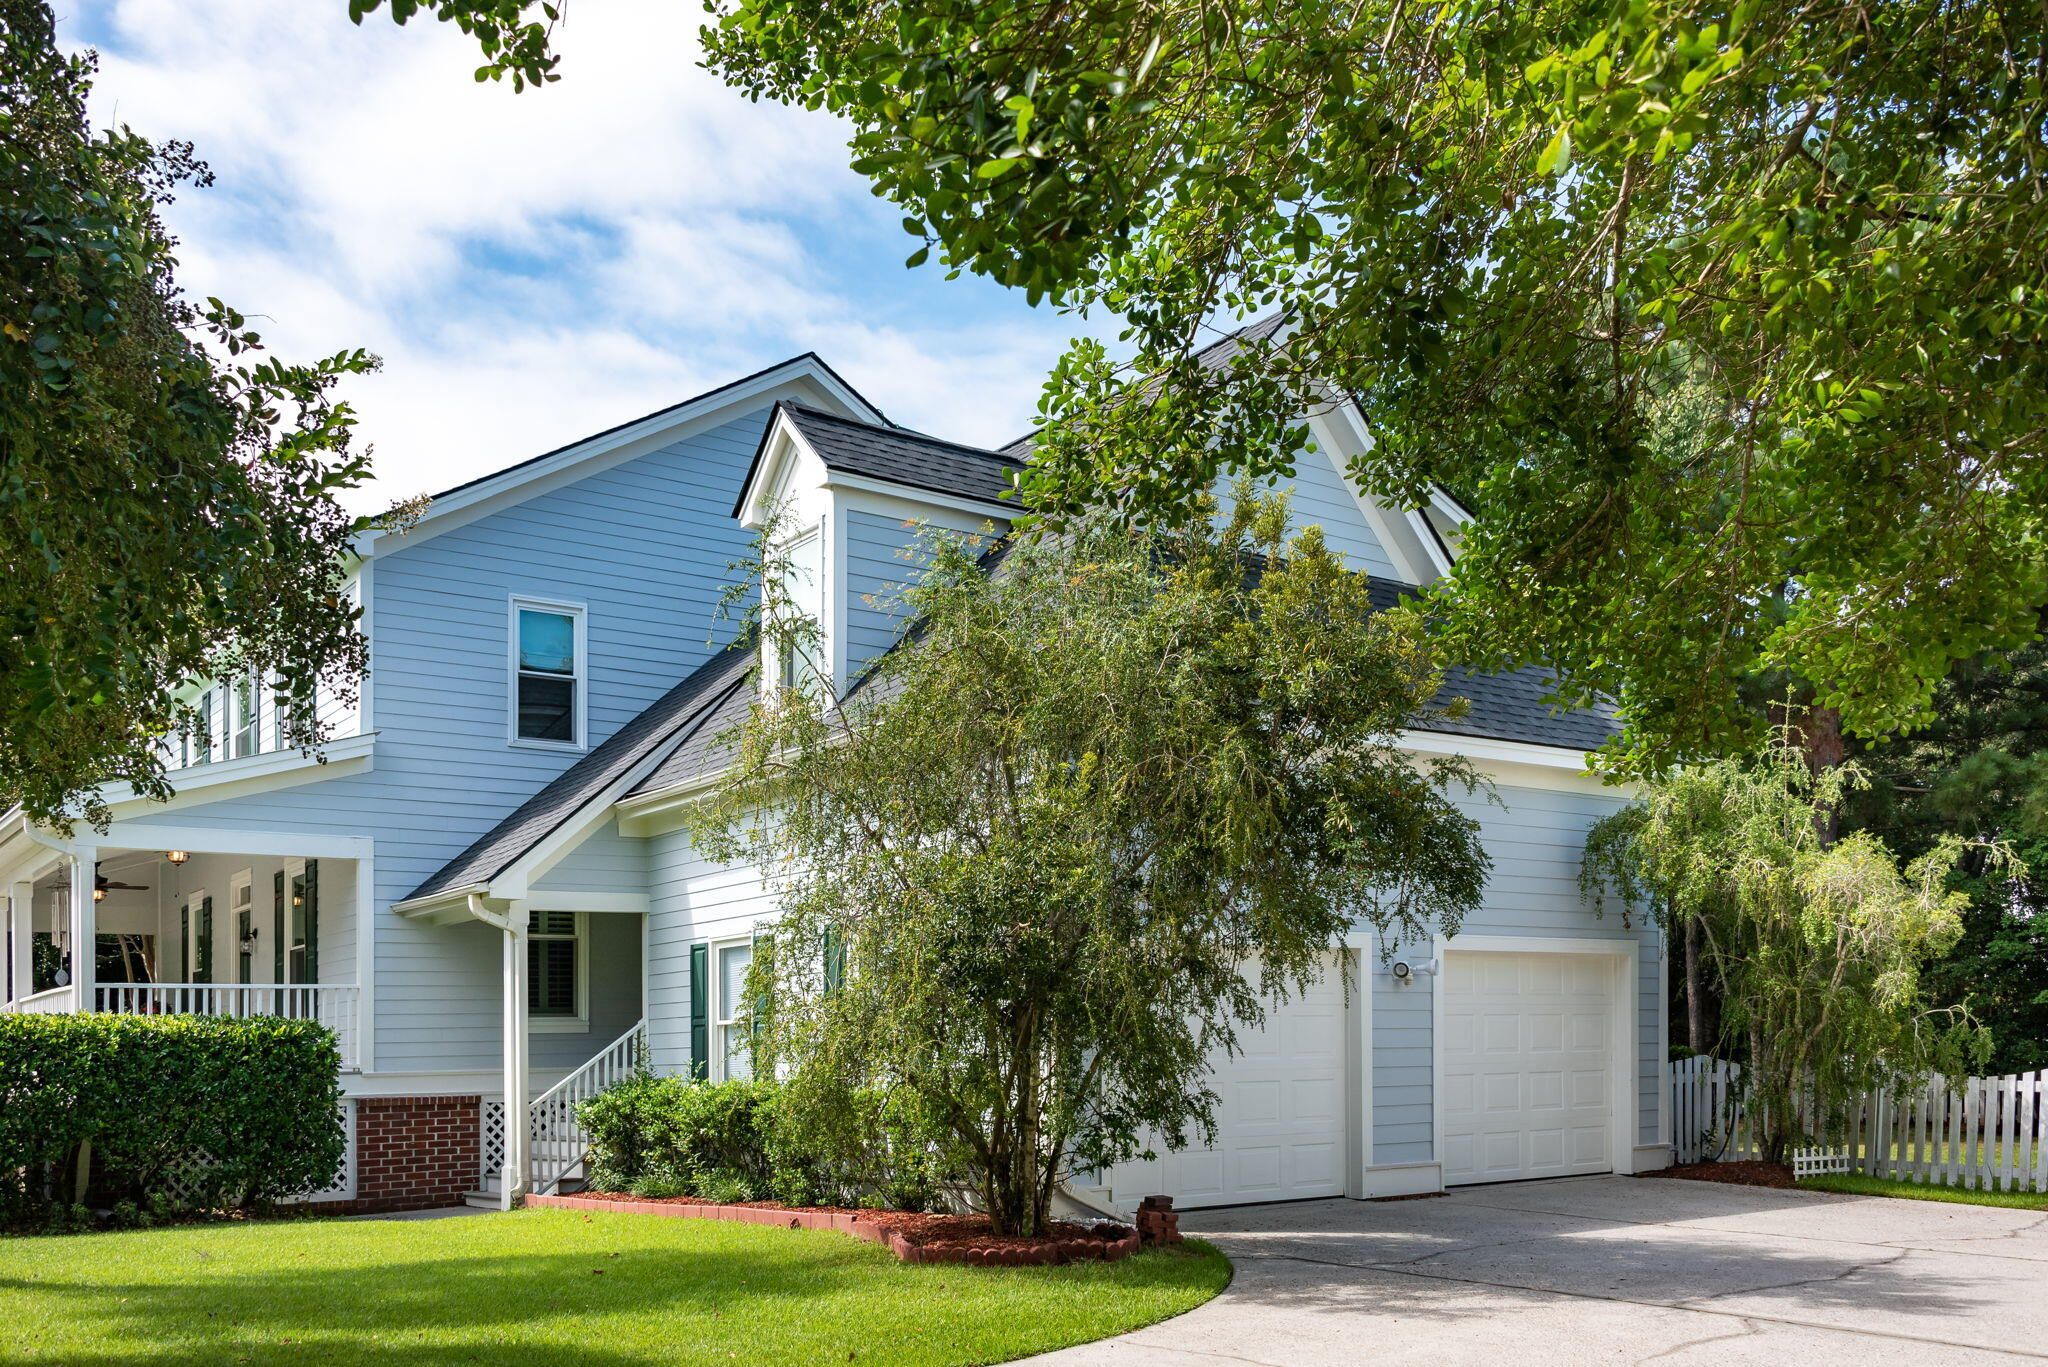 Rivertowne On The Wando Homes For Sale - 2301 Hartfords Bluff, Mount Pleasant, SC - 5